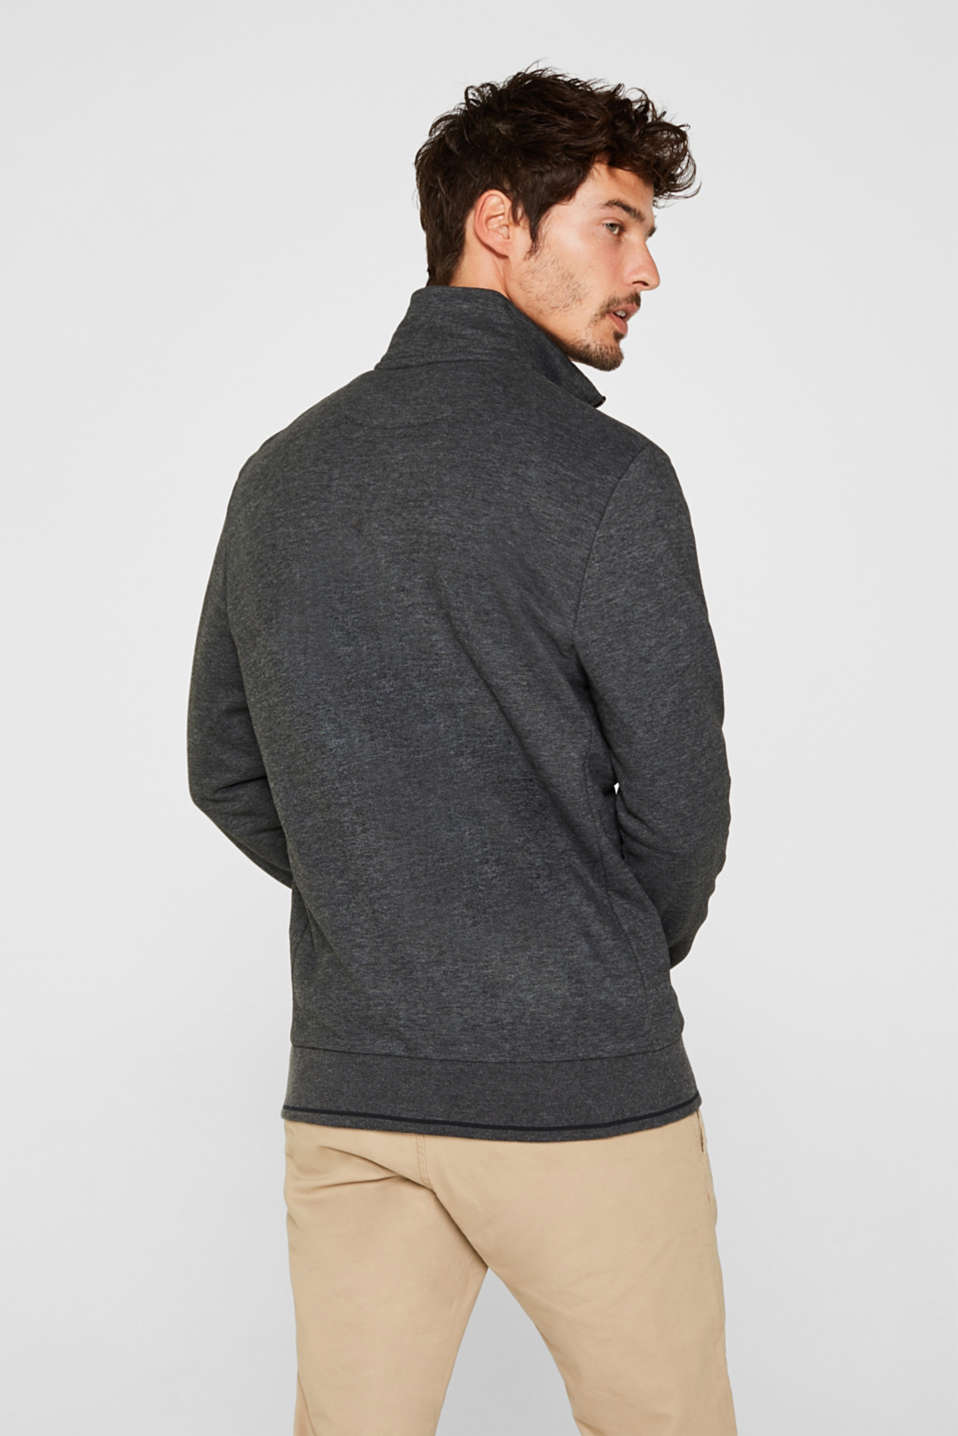 Cotton blend sweatshirt cardigan, ANTHRACITE, detail image number 3